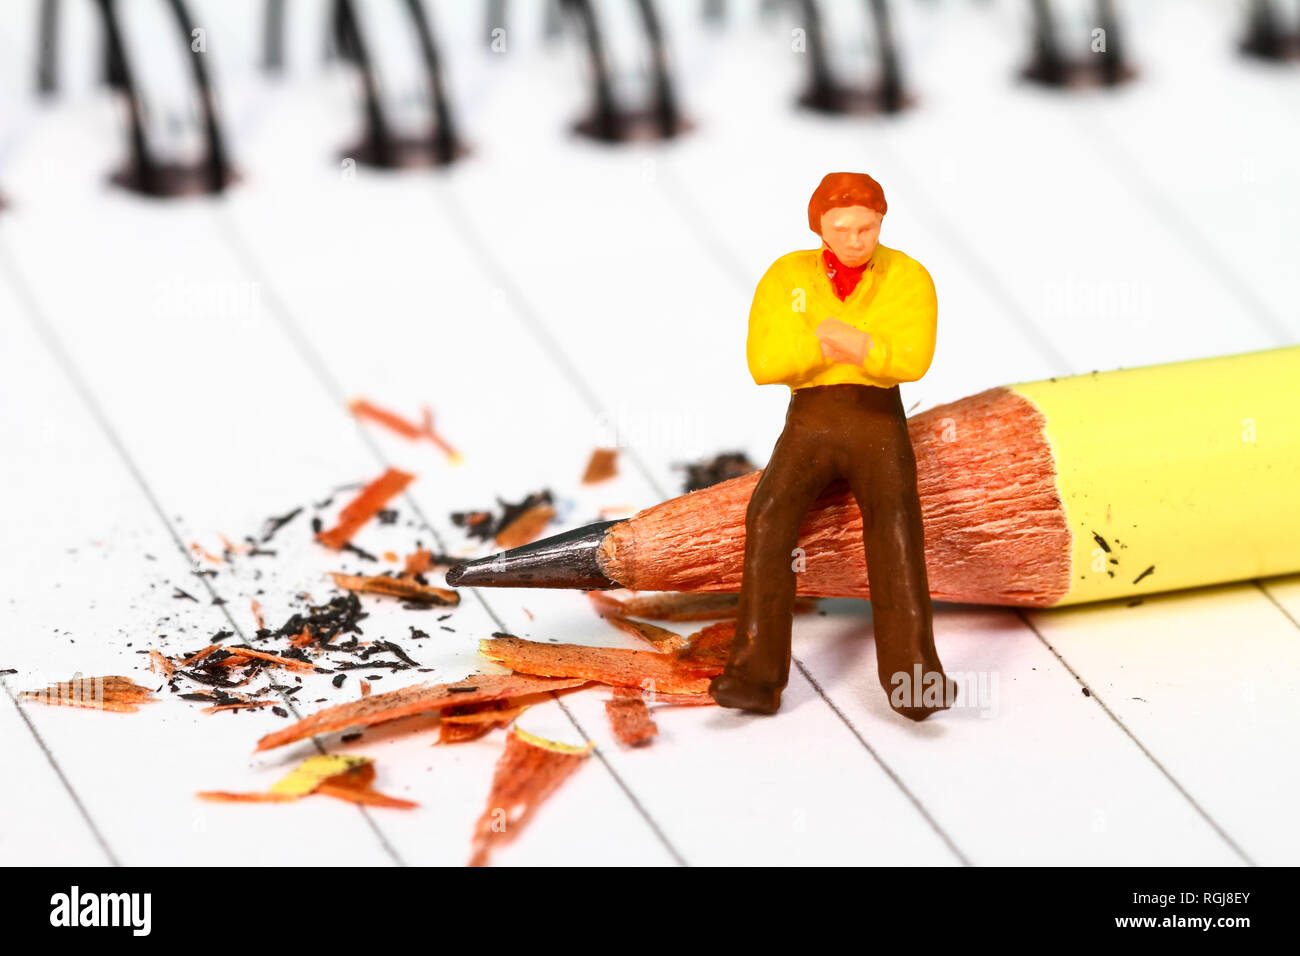 Conceptual diorama image of a miniature figure with writers block sat on a pencil on a note book - Stock Image